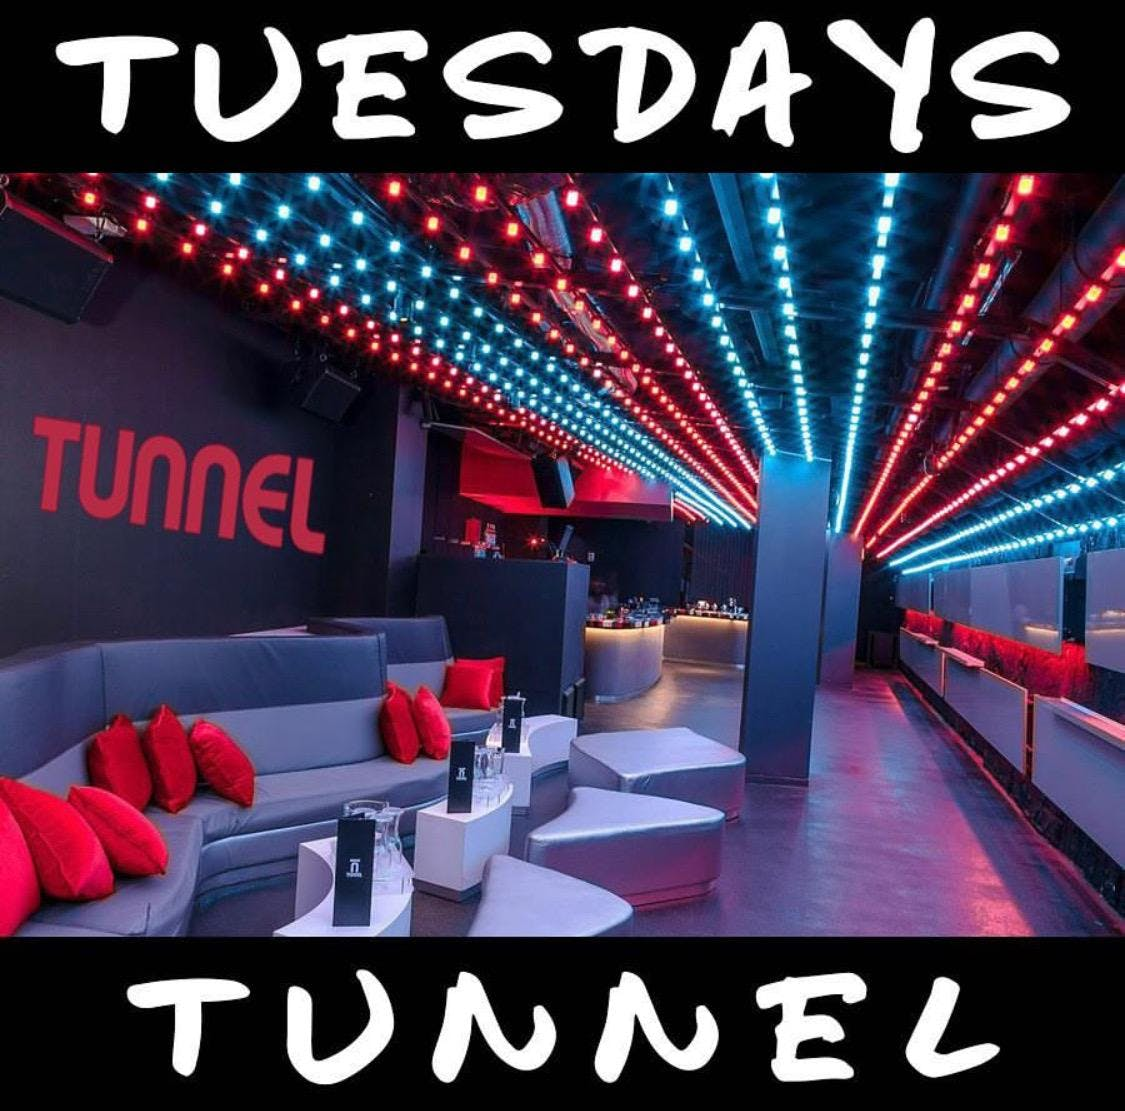 #TunnelTuesdays at TUNNEL BOSTON